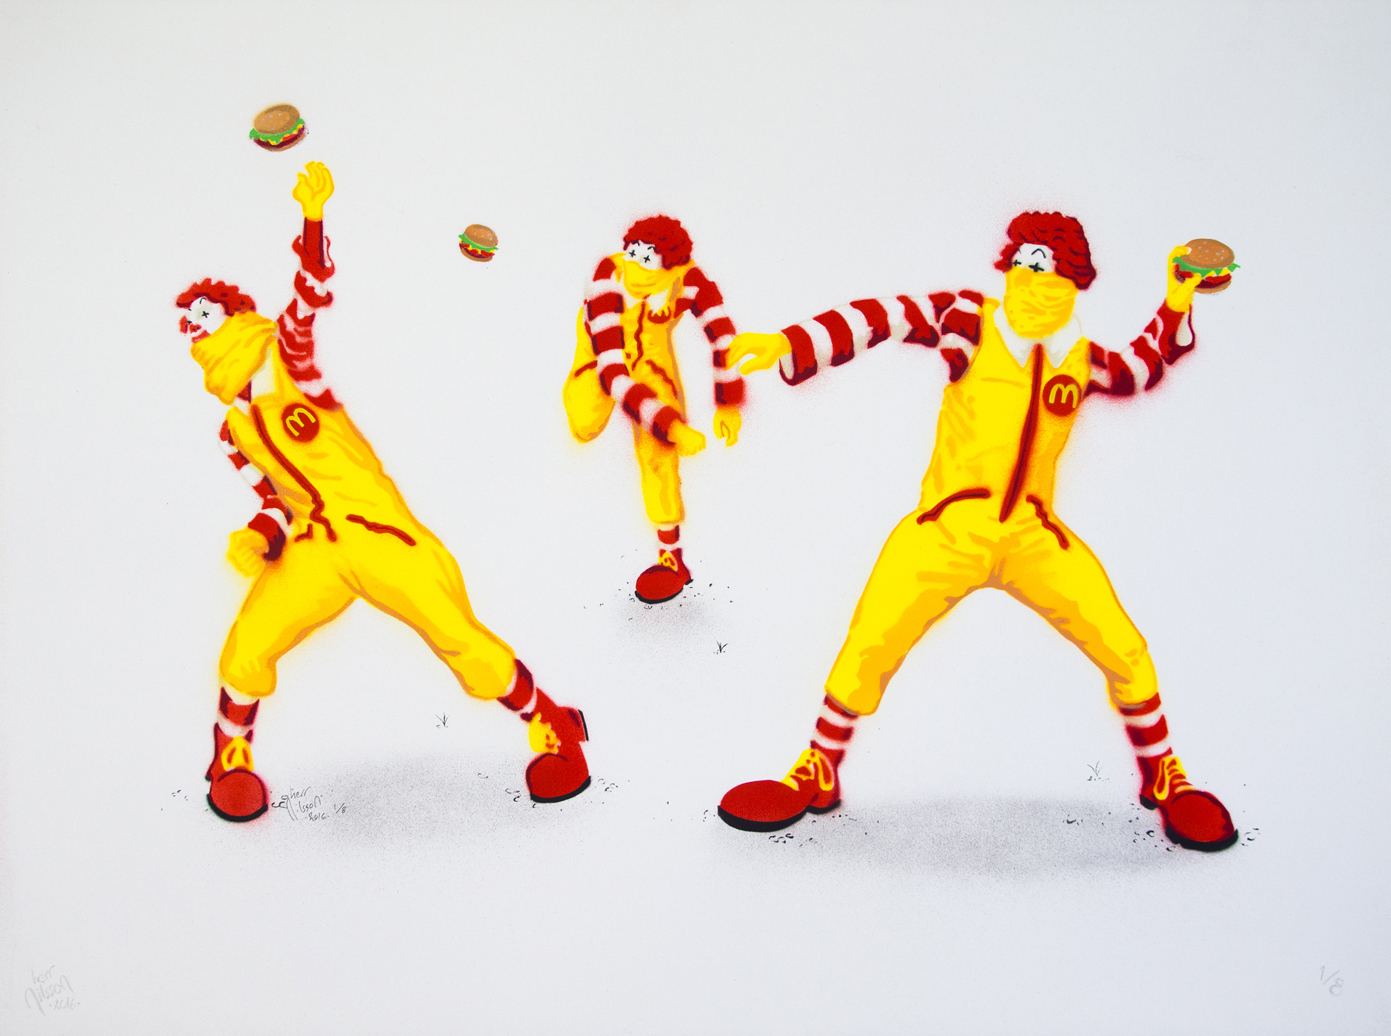 Riot Ronalds by Herr Nilsson